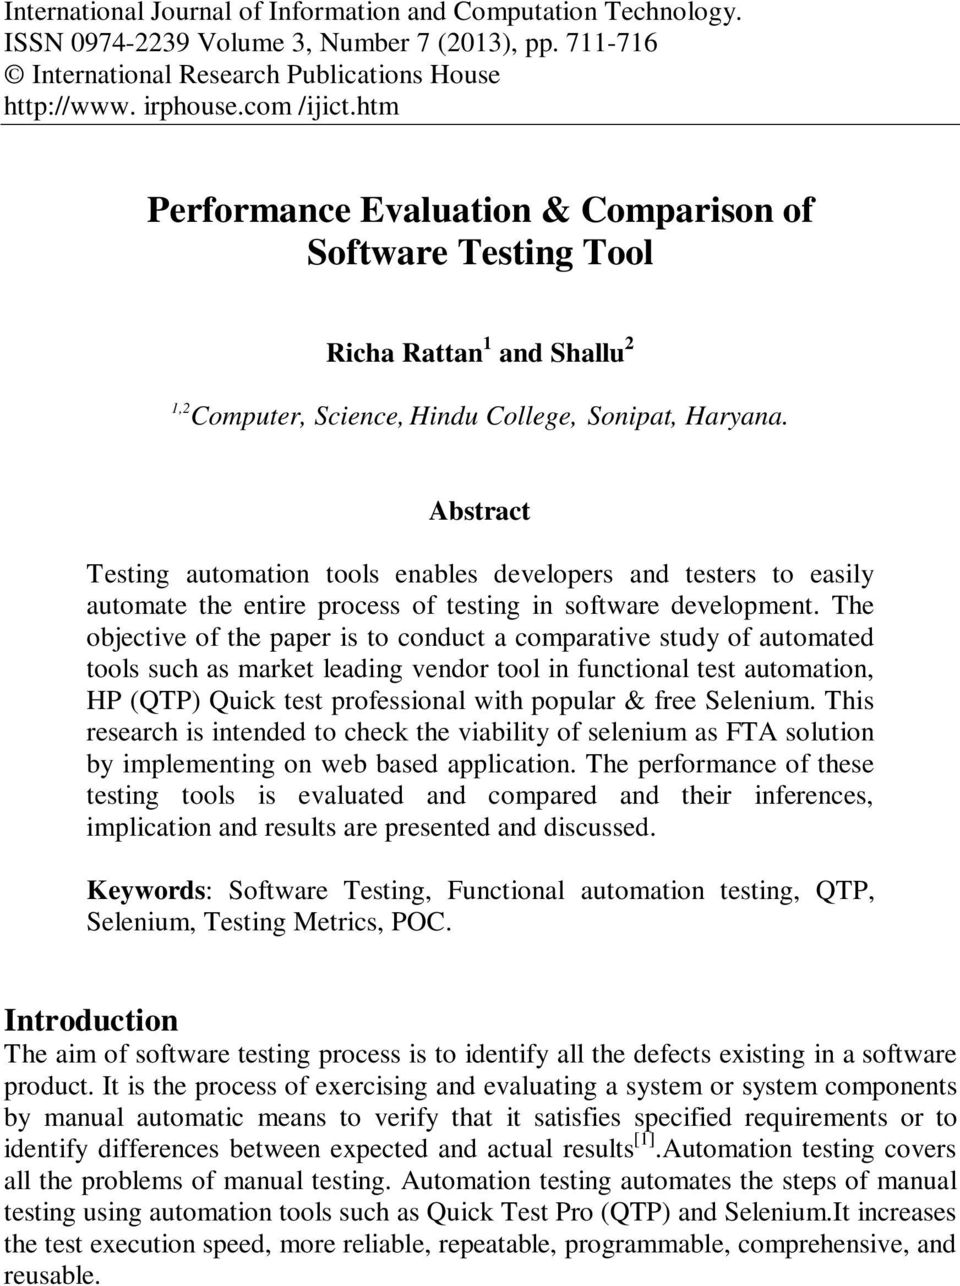 Performance Evaluation & Comparison of Software Testing Tool